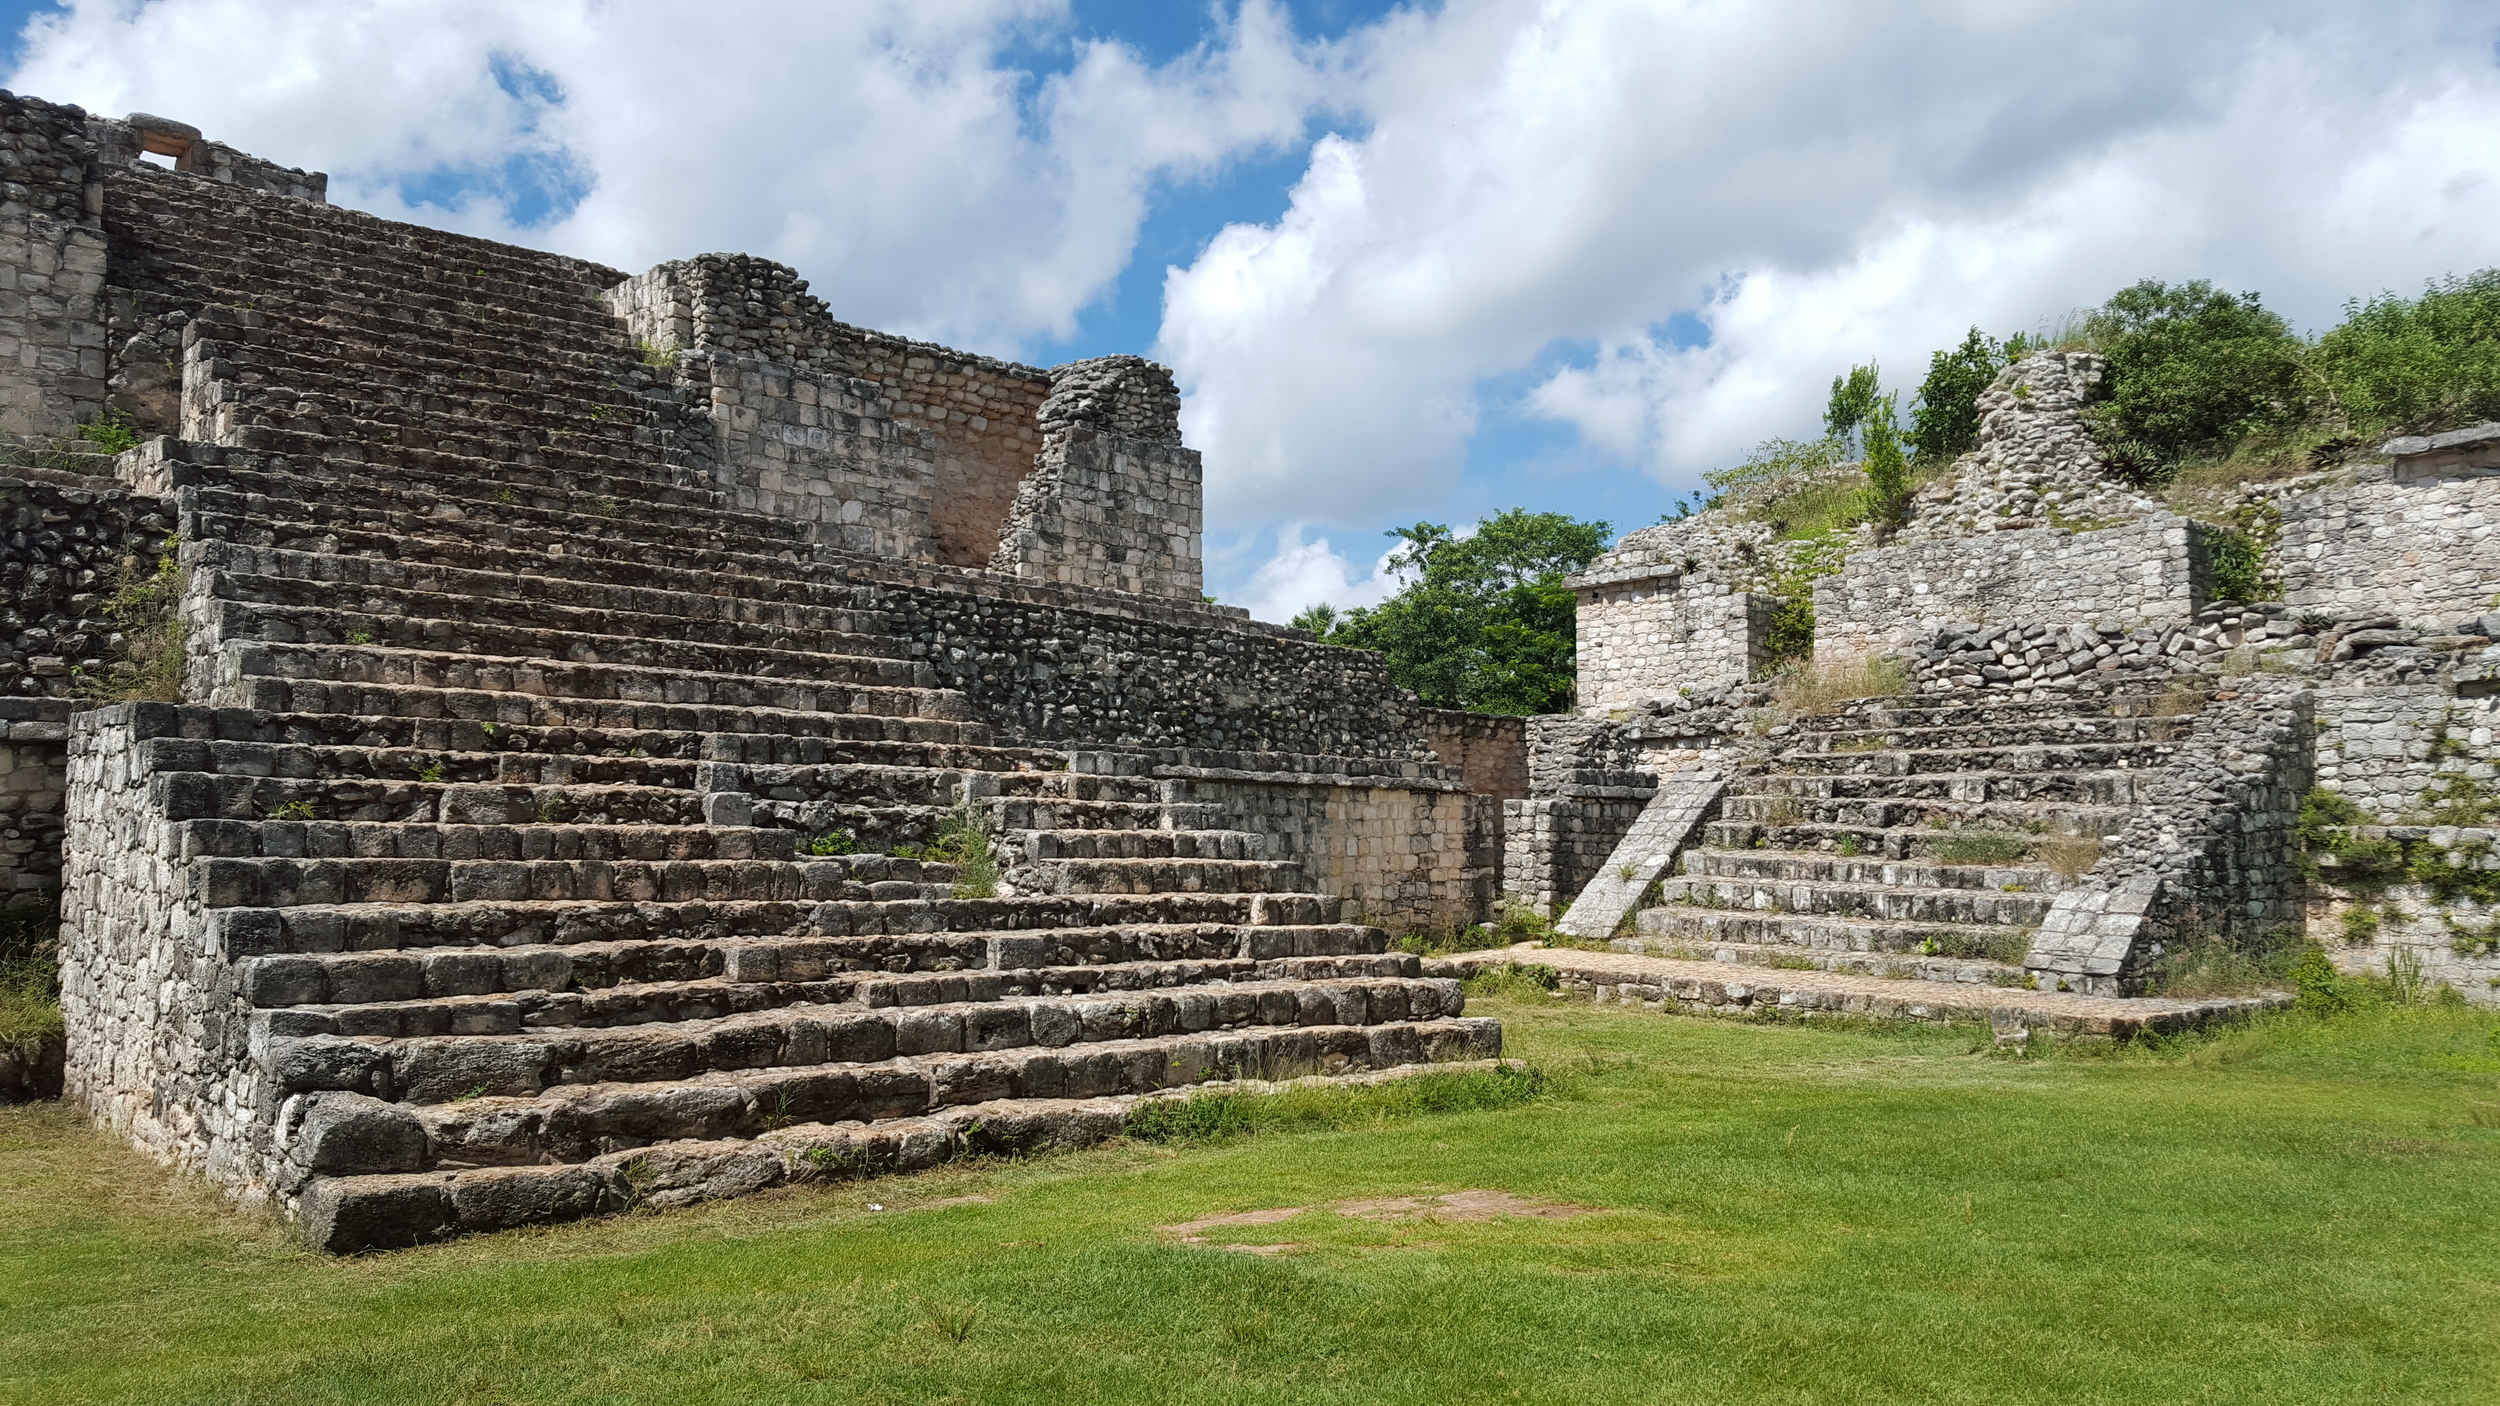 Forty five structures have been mapped thus far. The grounds span 12 kilometers but only the center is open for viewing. There are several temples, a large pyramid (El Torre), ball court and two palaces. I would give yourself about two hours to see it all.